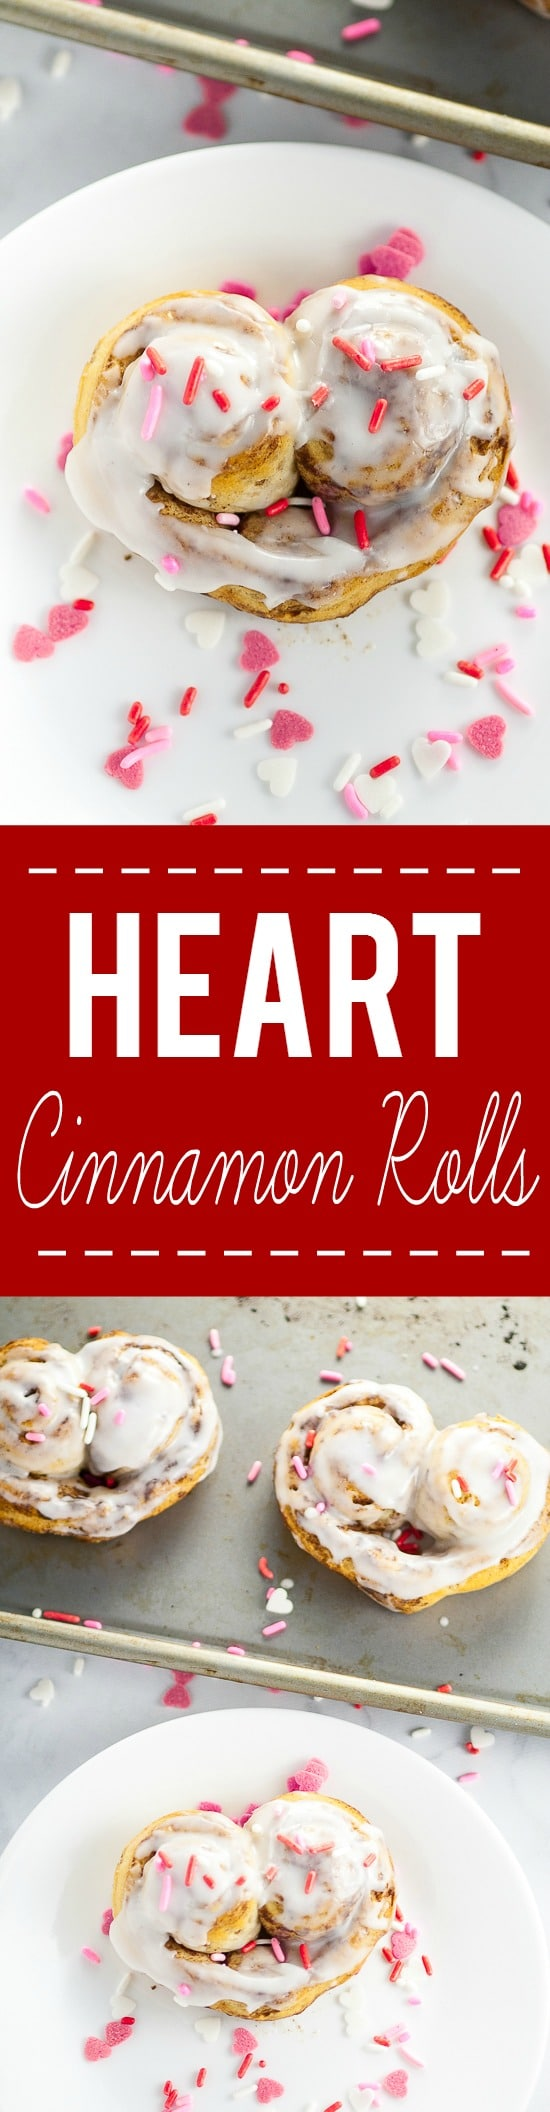 Heart Cinnamon Rolls recipe and tutorial for Valentine's Day - Quick and easy and totally adorable Heart Cinnamon Rolls make a festive Valentine's Day breakfast that the kids will love!